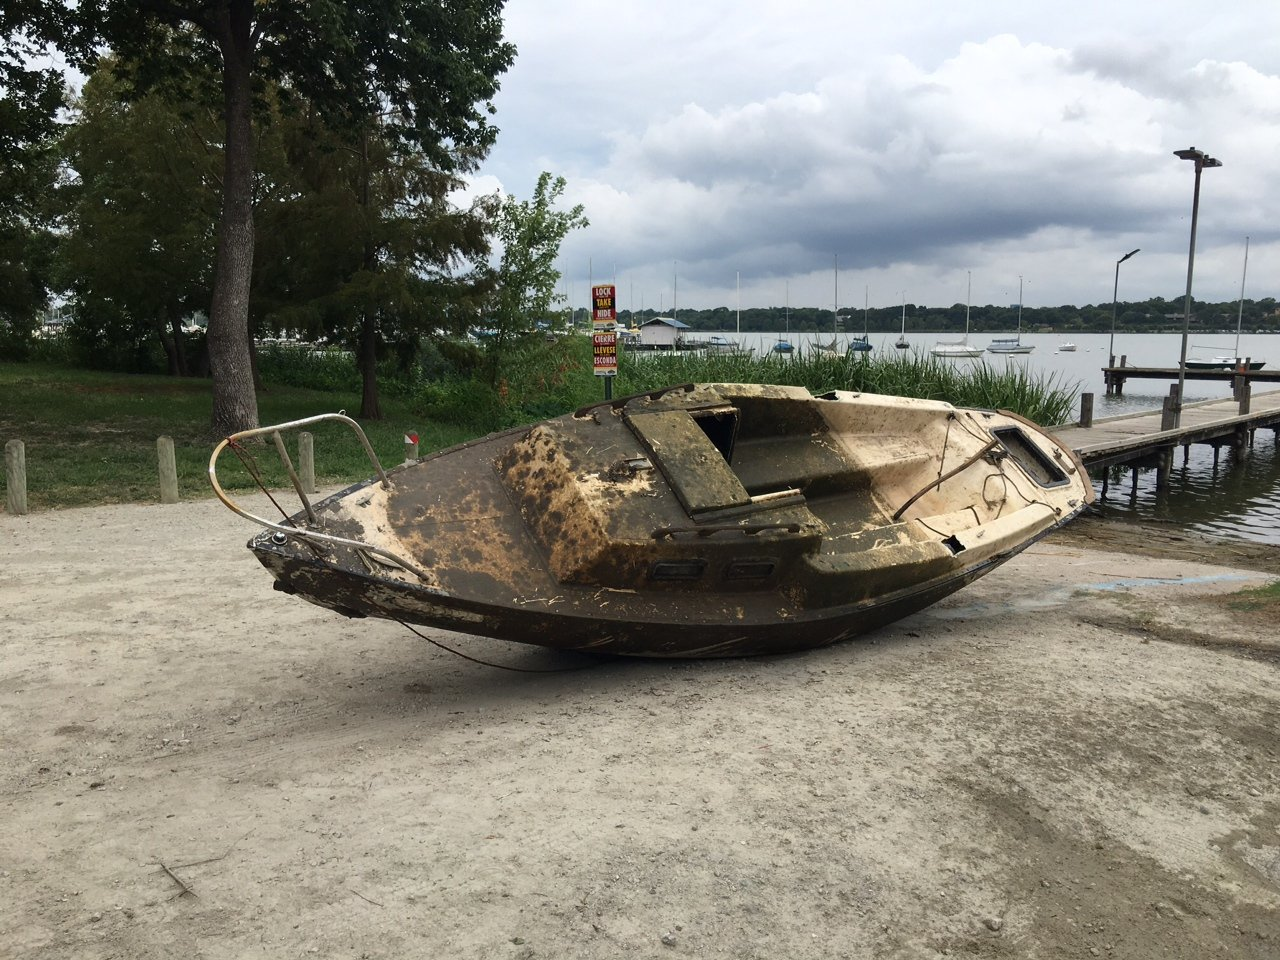 HDR Engineering Adopt-a_shoreline team worked hard to pull this abandoned, sunken boat from White Rock Lake.